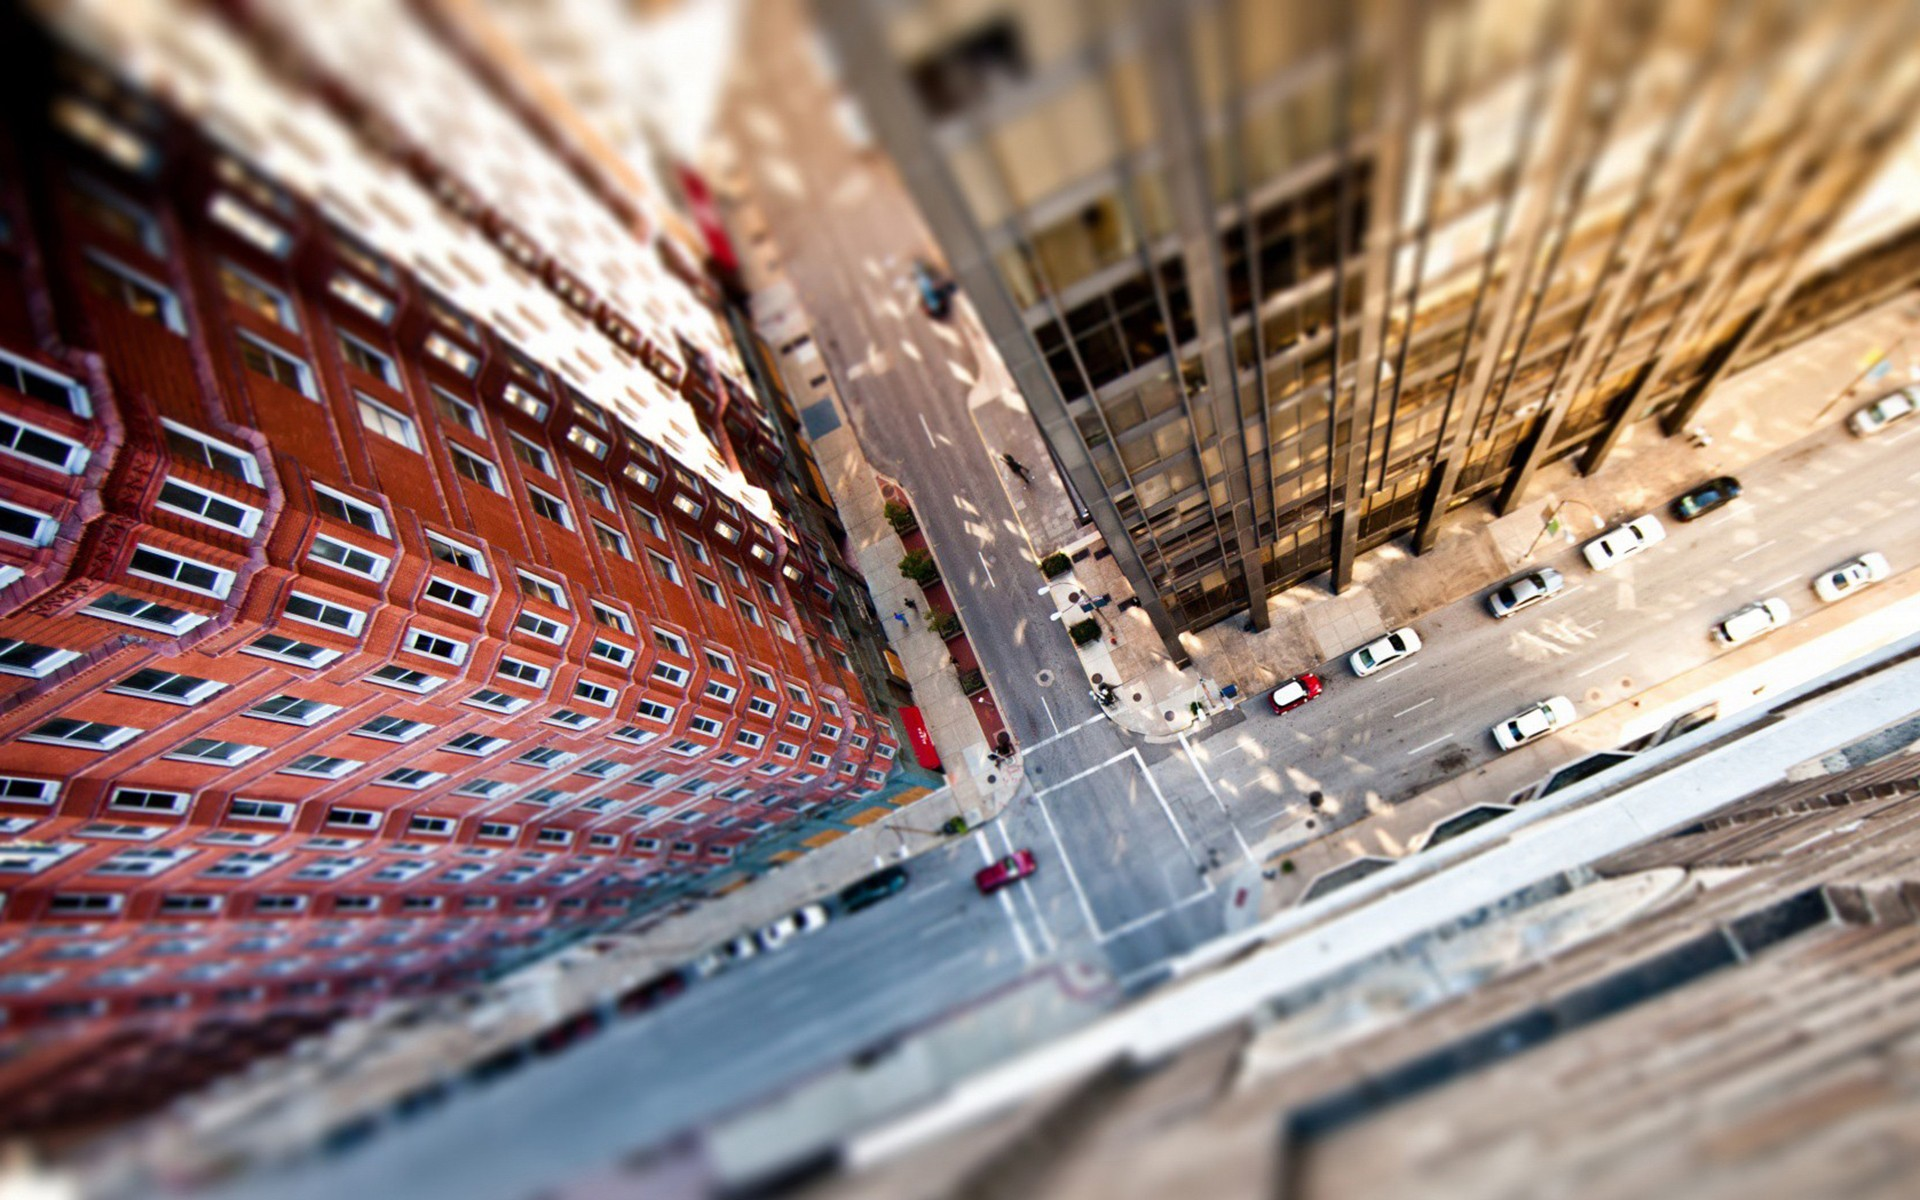 General 1920x1200 bird's eye view city street cityscape urban brown tilt shift building aerial view road car New York City USA blurred HDR